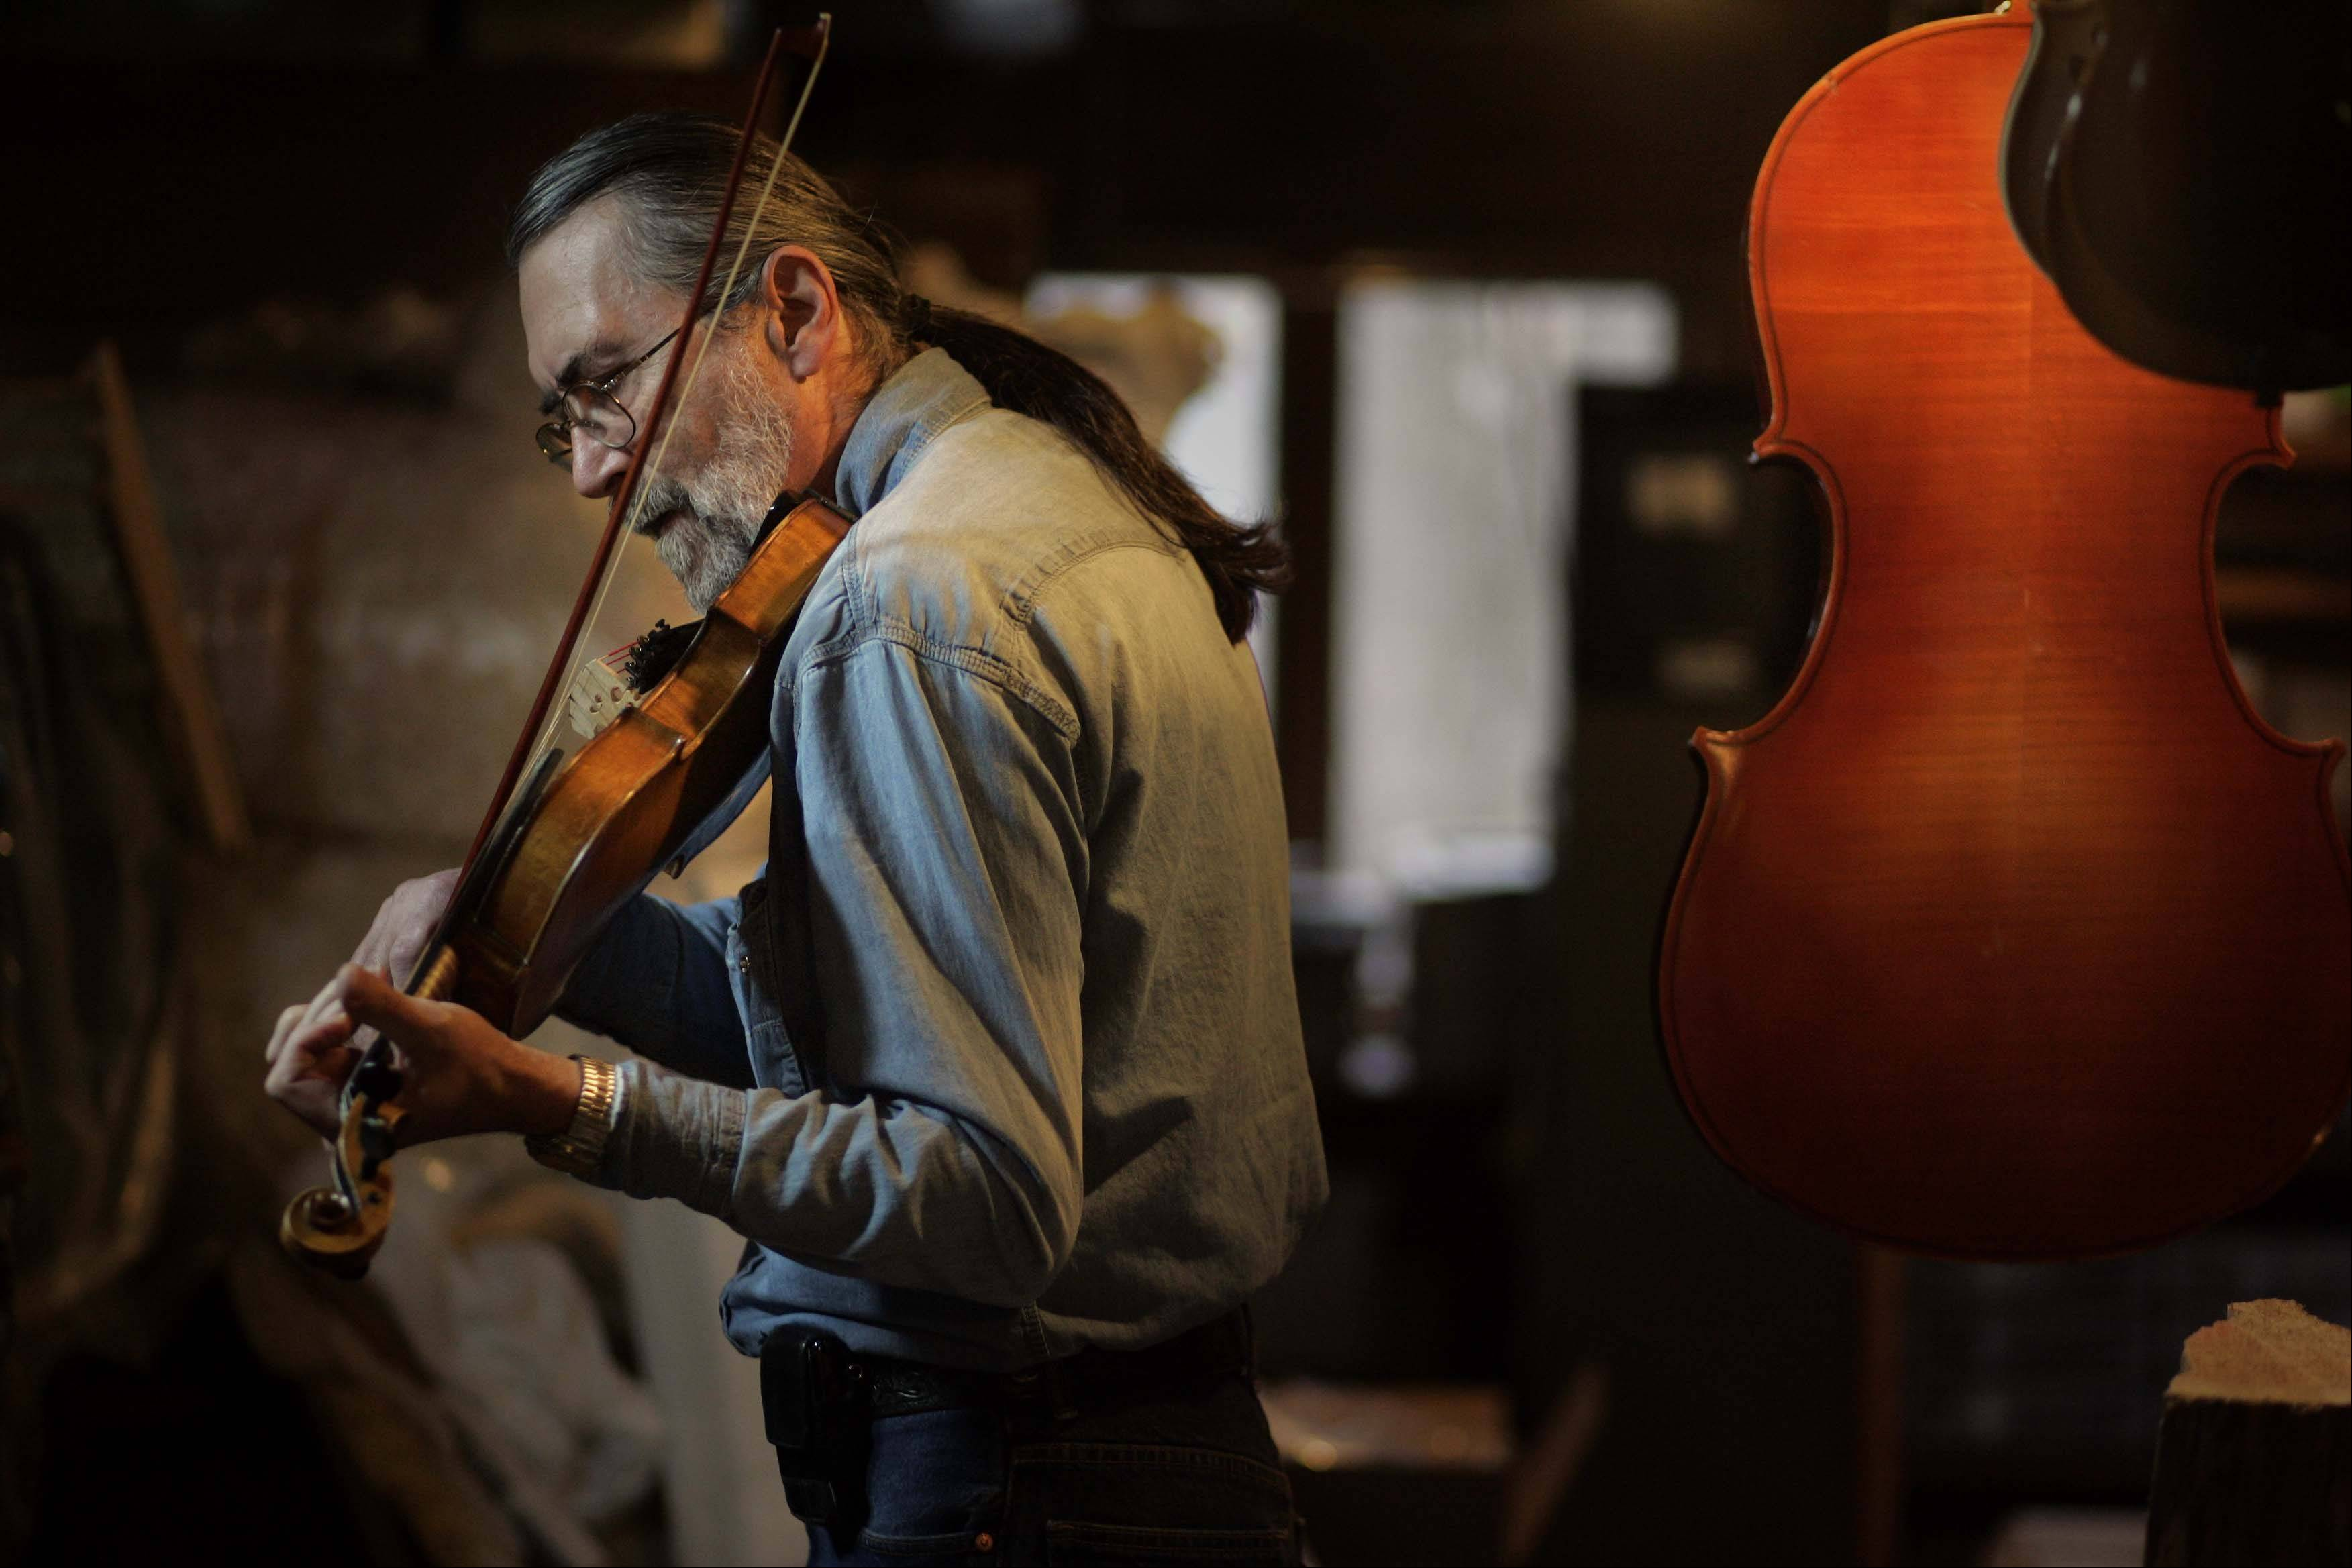 See inside Marengo man's instrument workshop